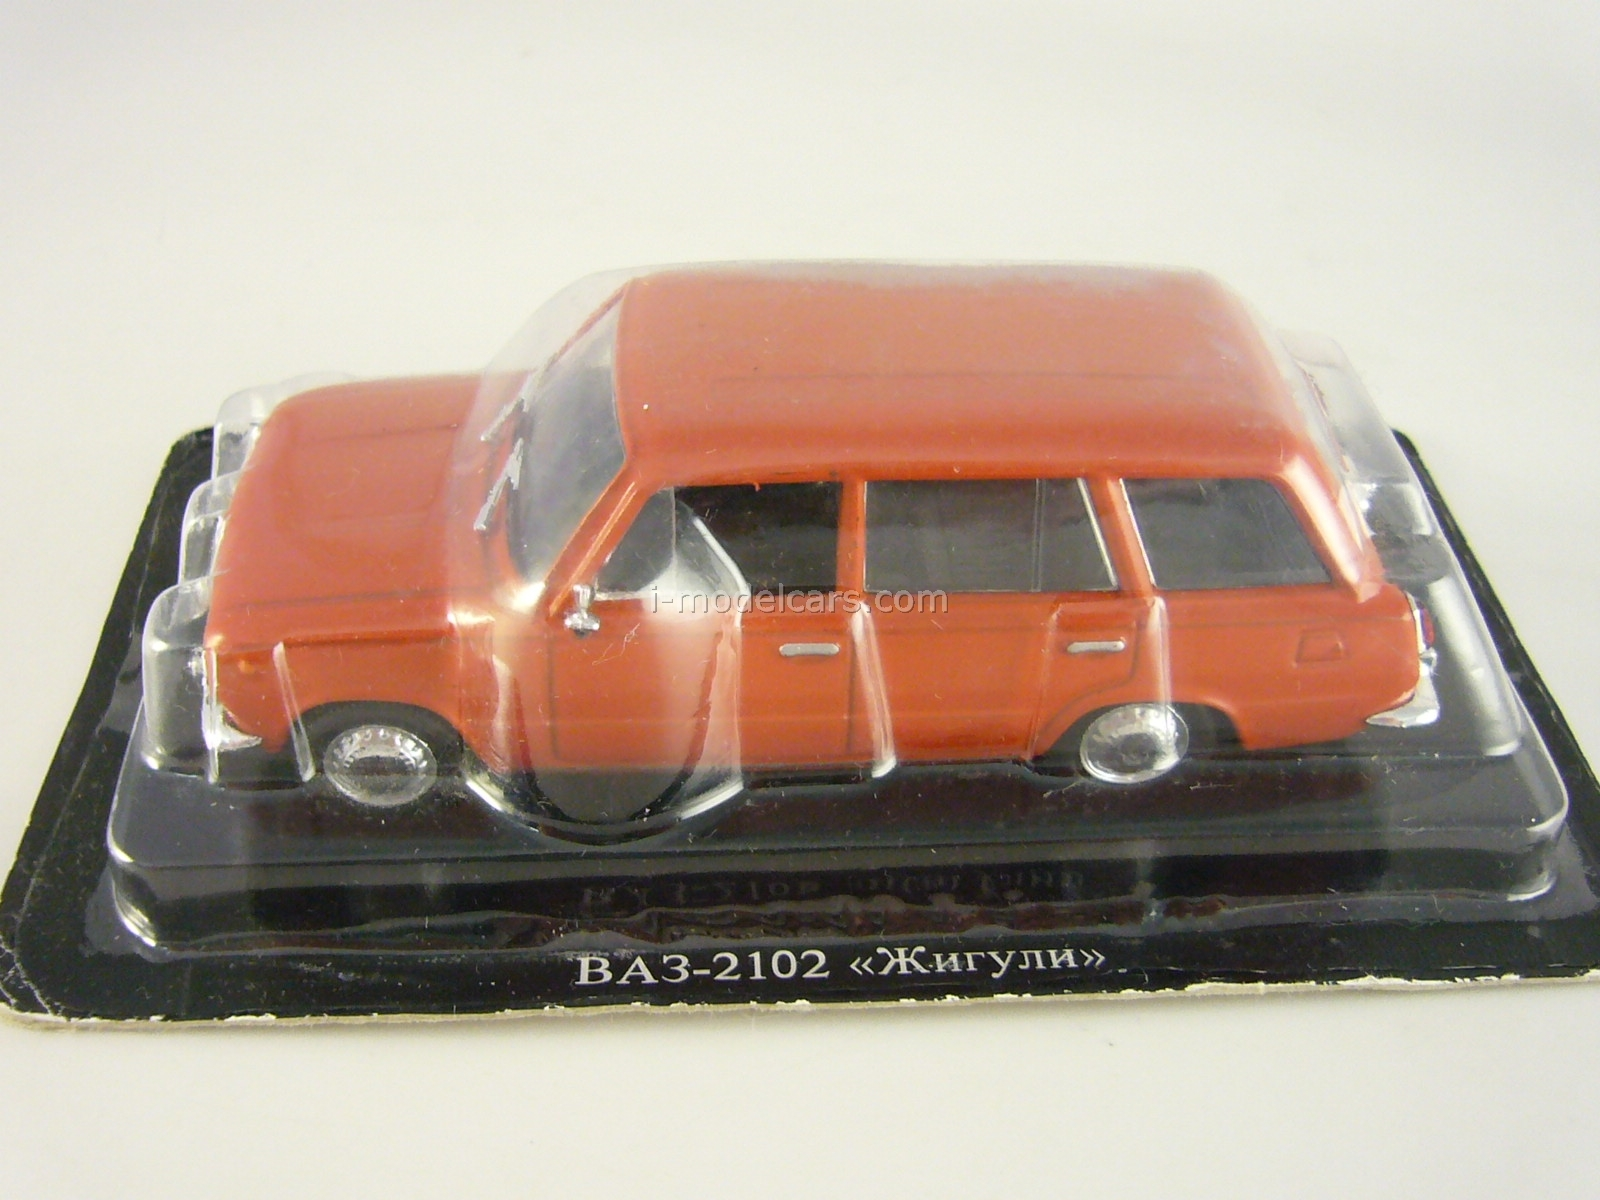 VAZ-2102 Lada red 1:43 DeAgostini Auto Legends USSR #14